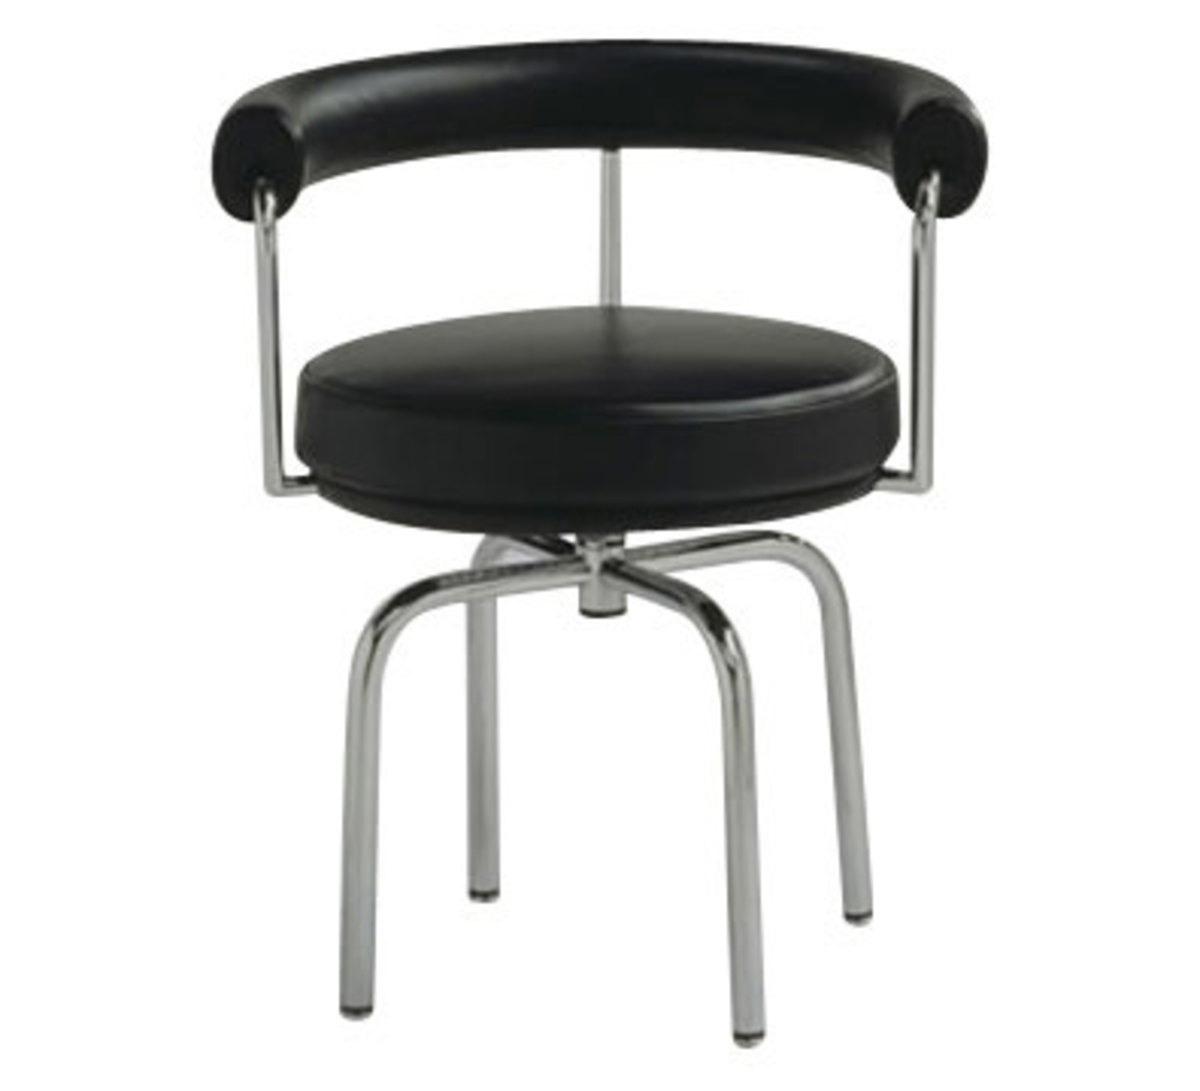 the LC-7 Swivel Chair